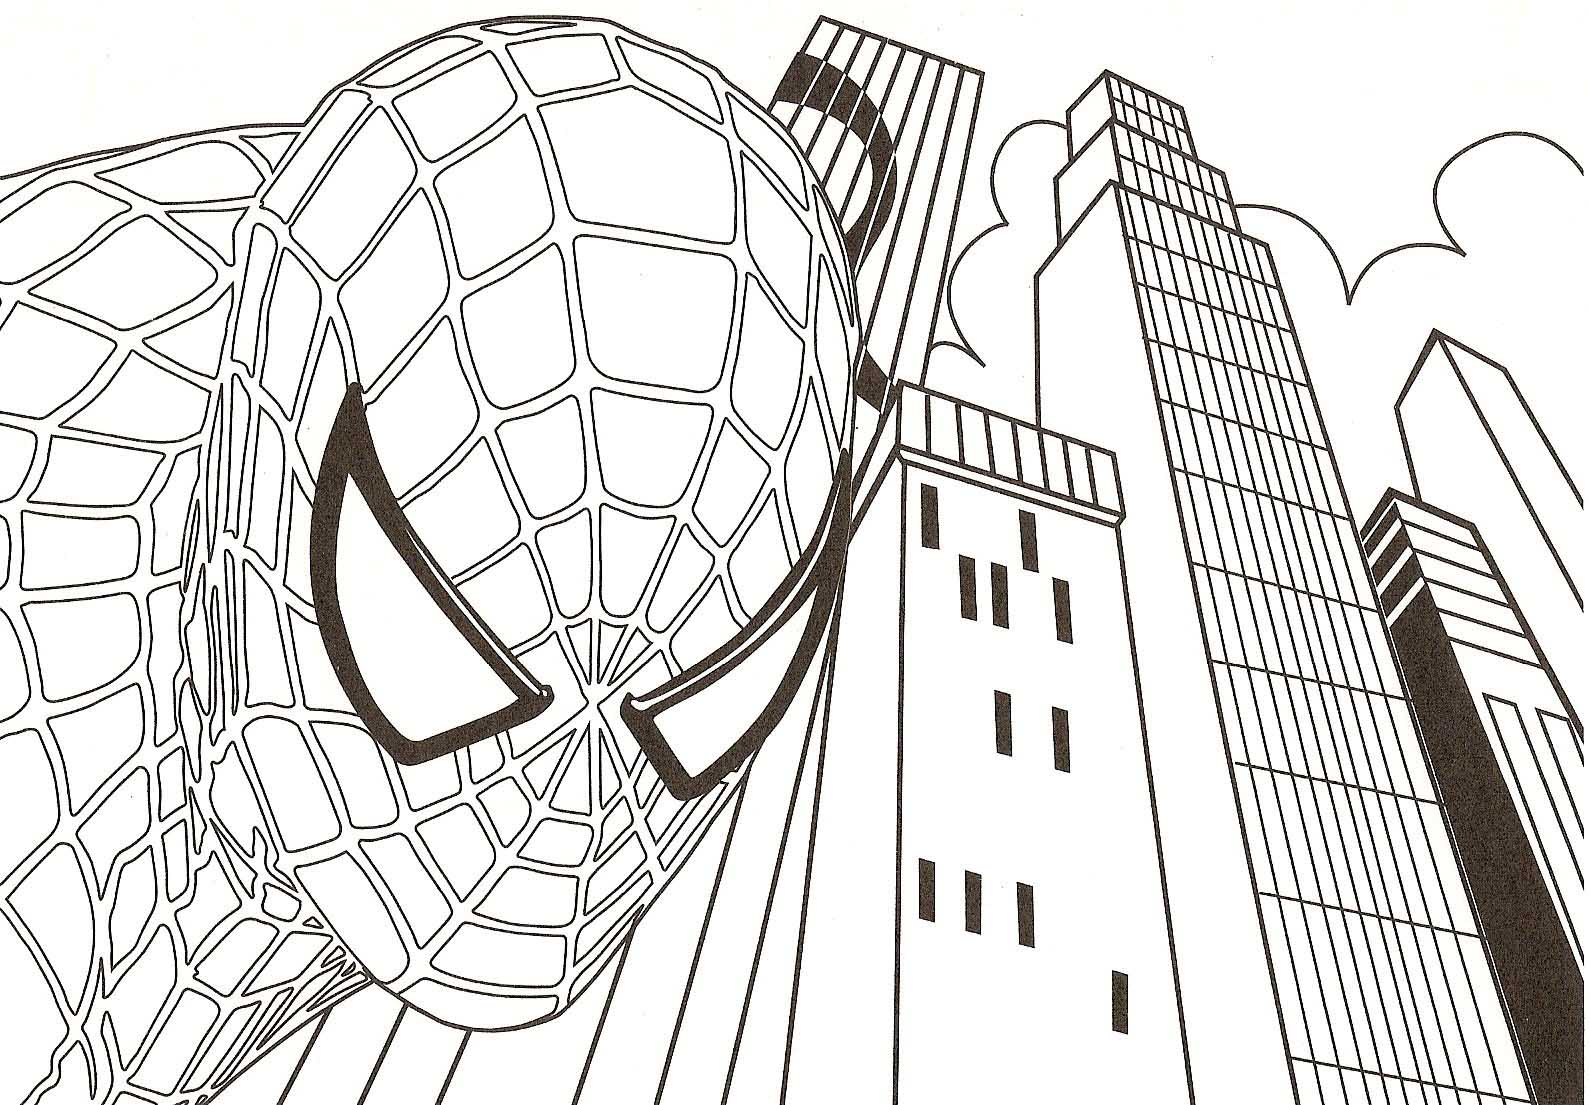 spiderman coloring pages games - Spiderman Coloring Pages Printable